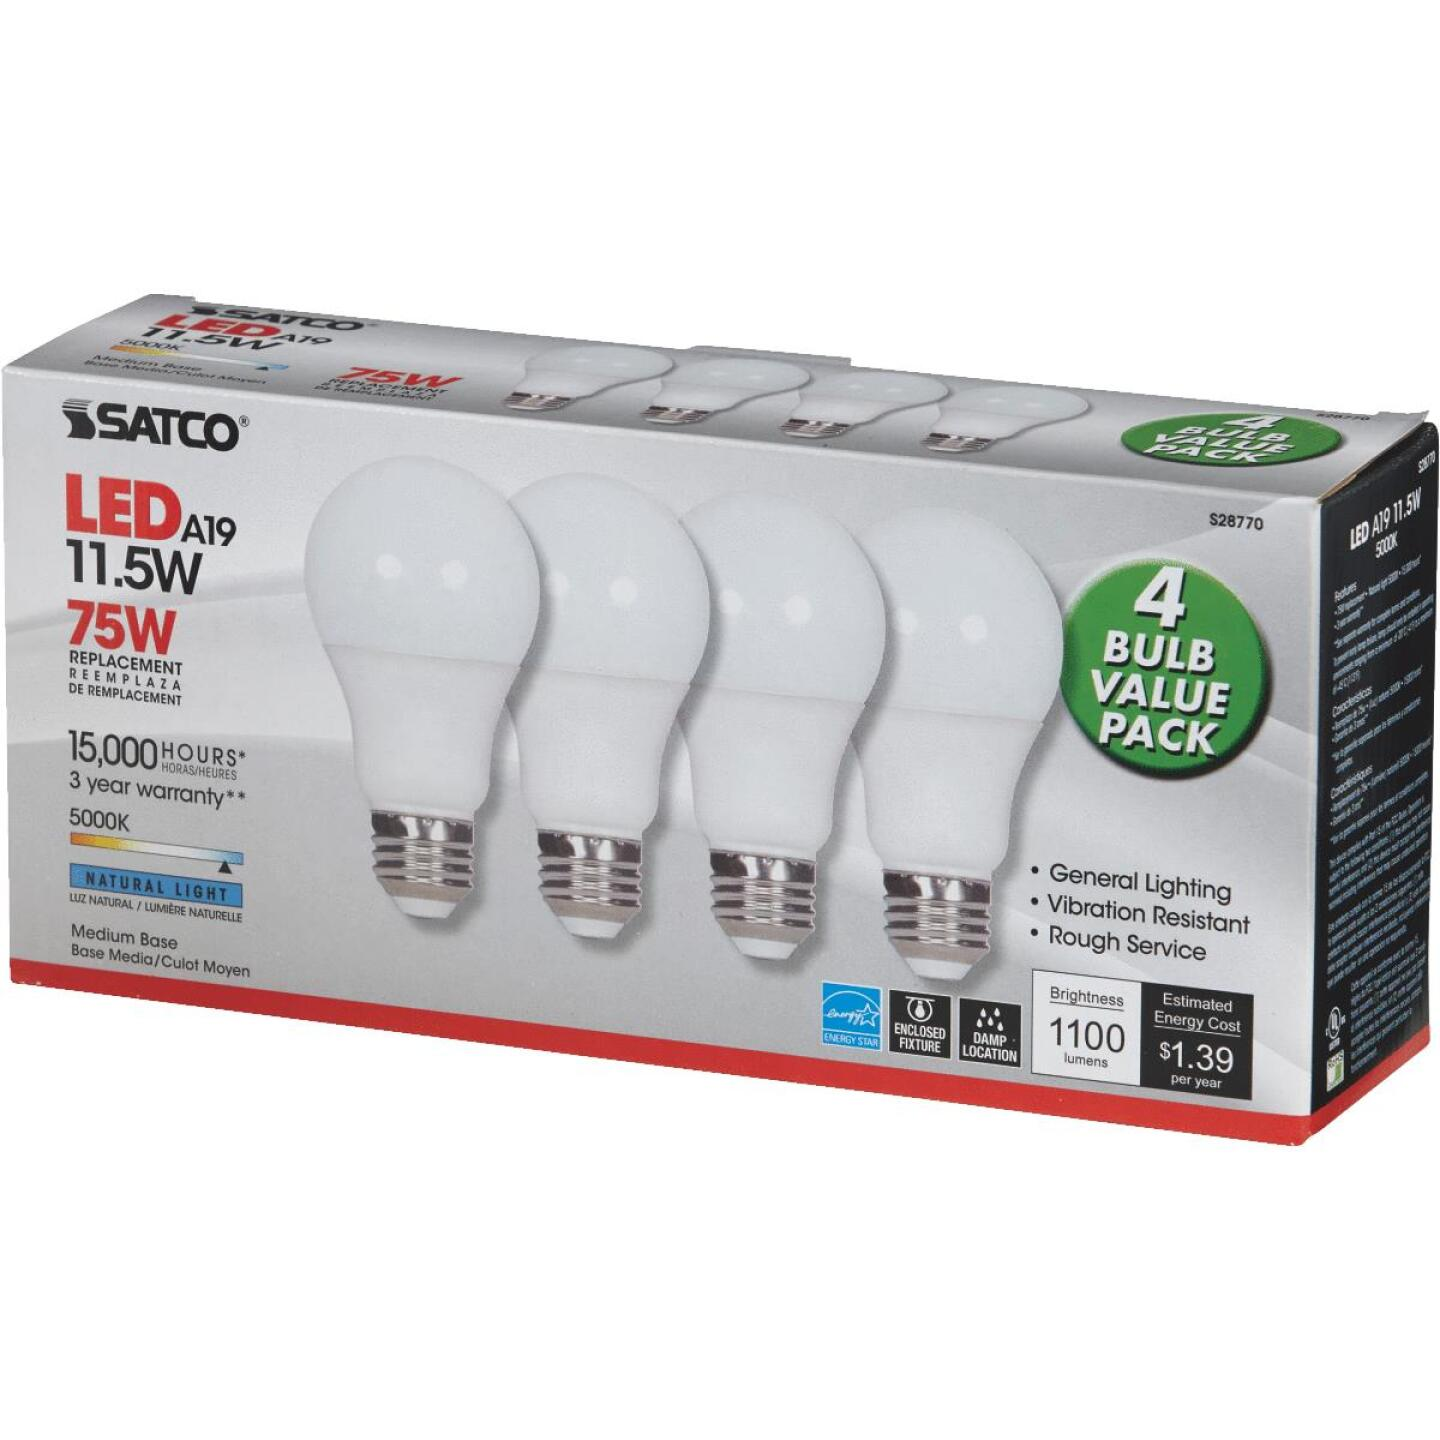 Satco 75W Equivalent Natural Light A19 Medium LED Light Bulb (4-Pack) Image 3